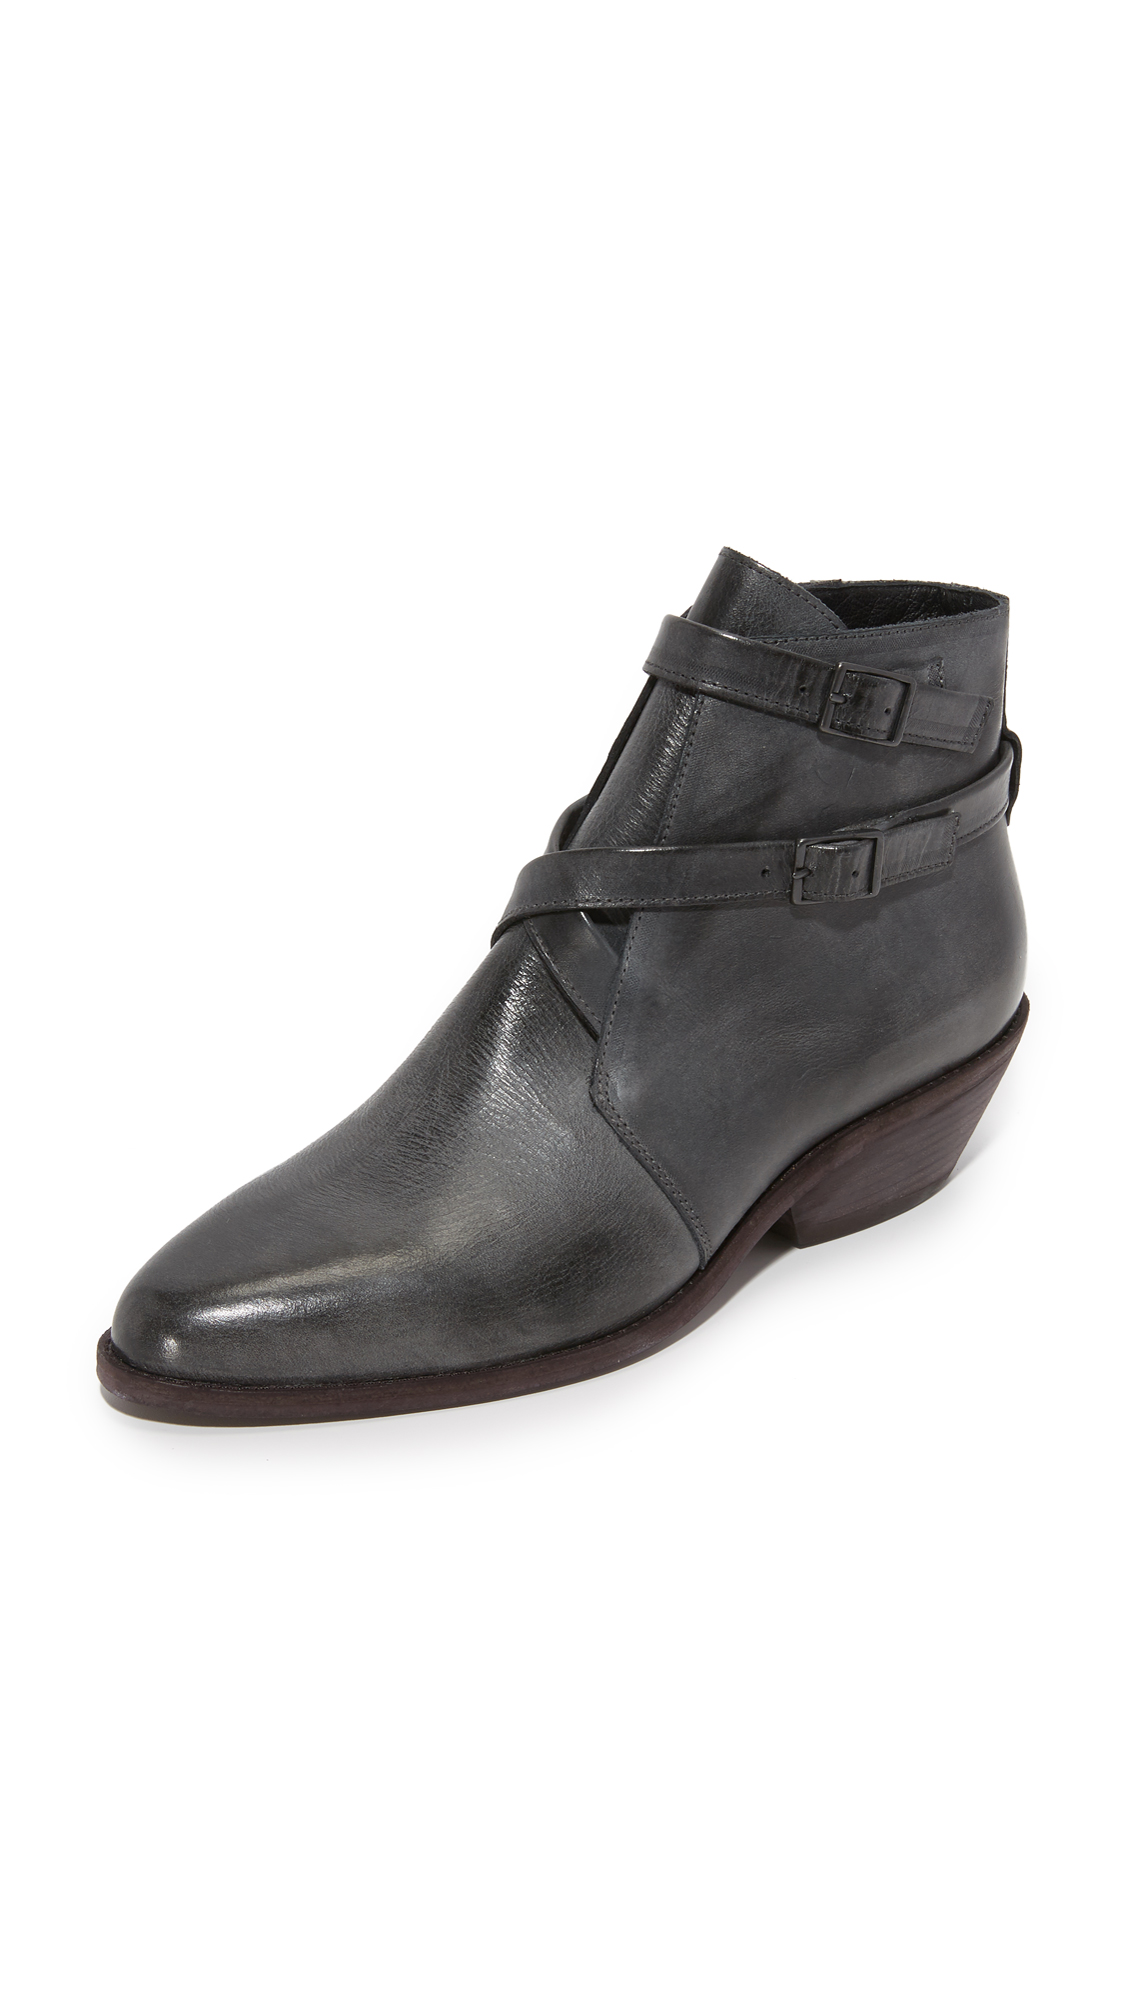 Ld Tuttle Expanse Booties - Graphite